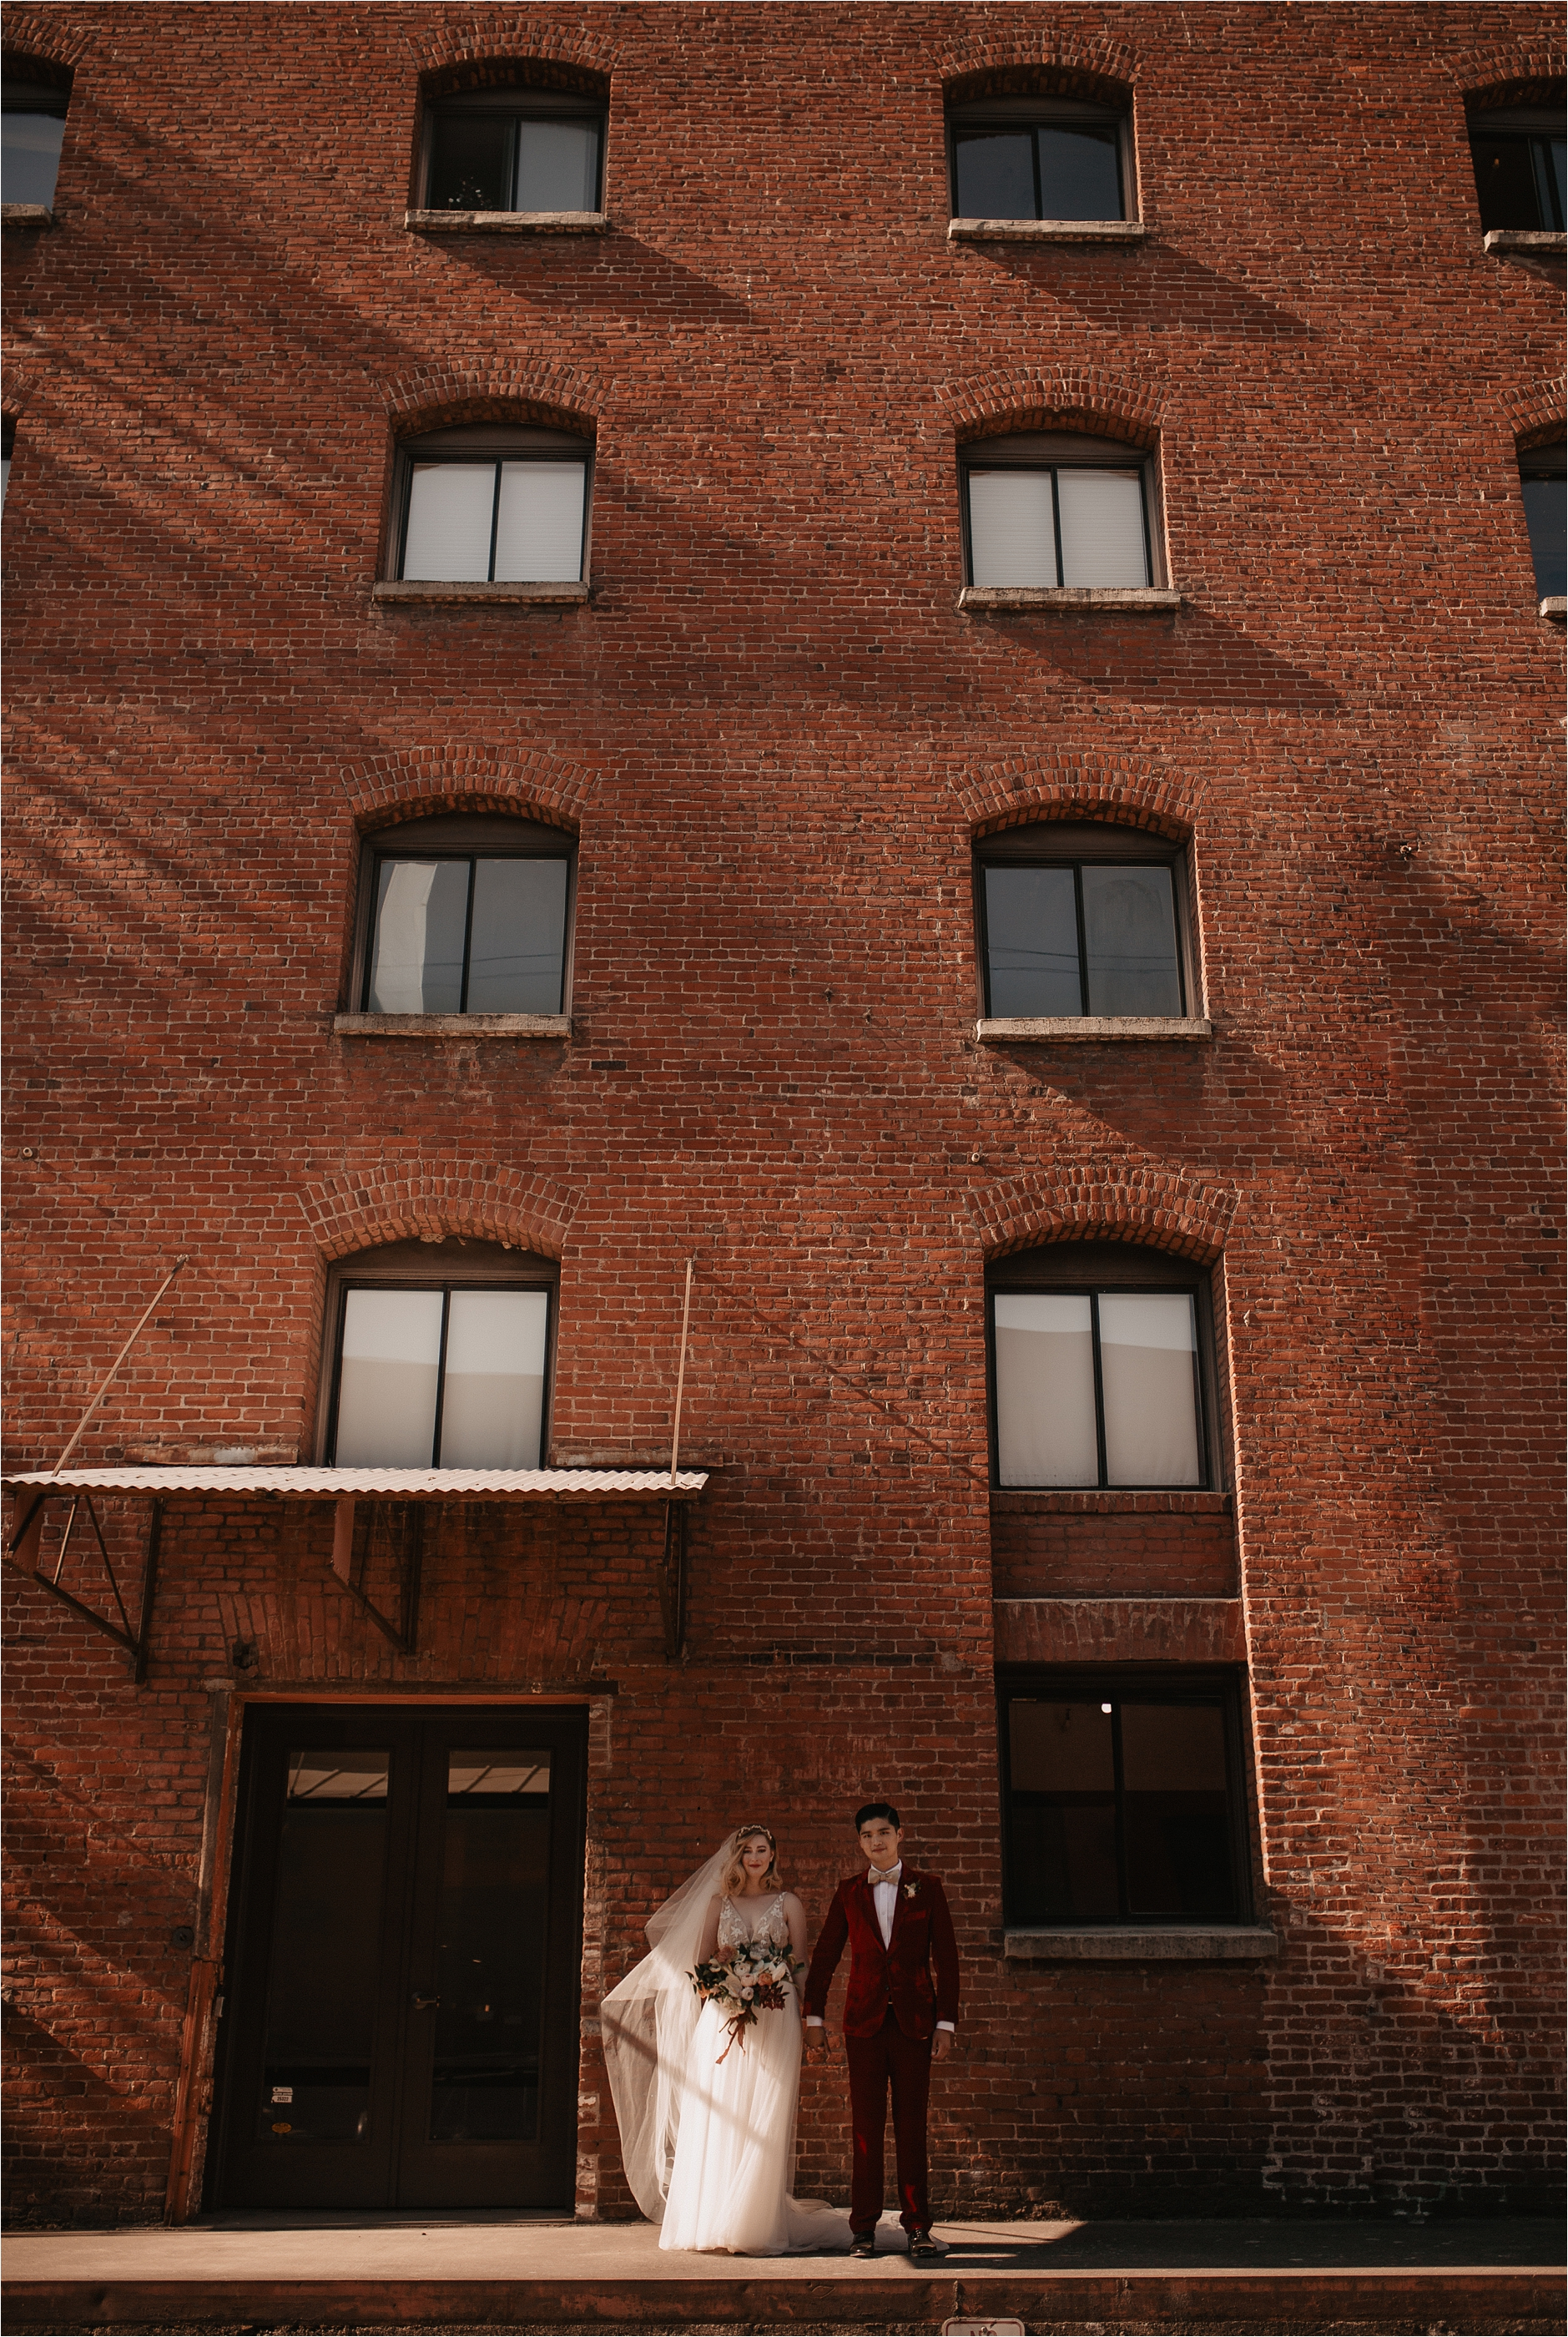 Castaway Portland Brick Wall Urban wedding portraits